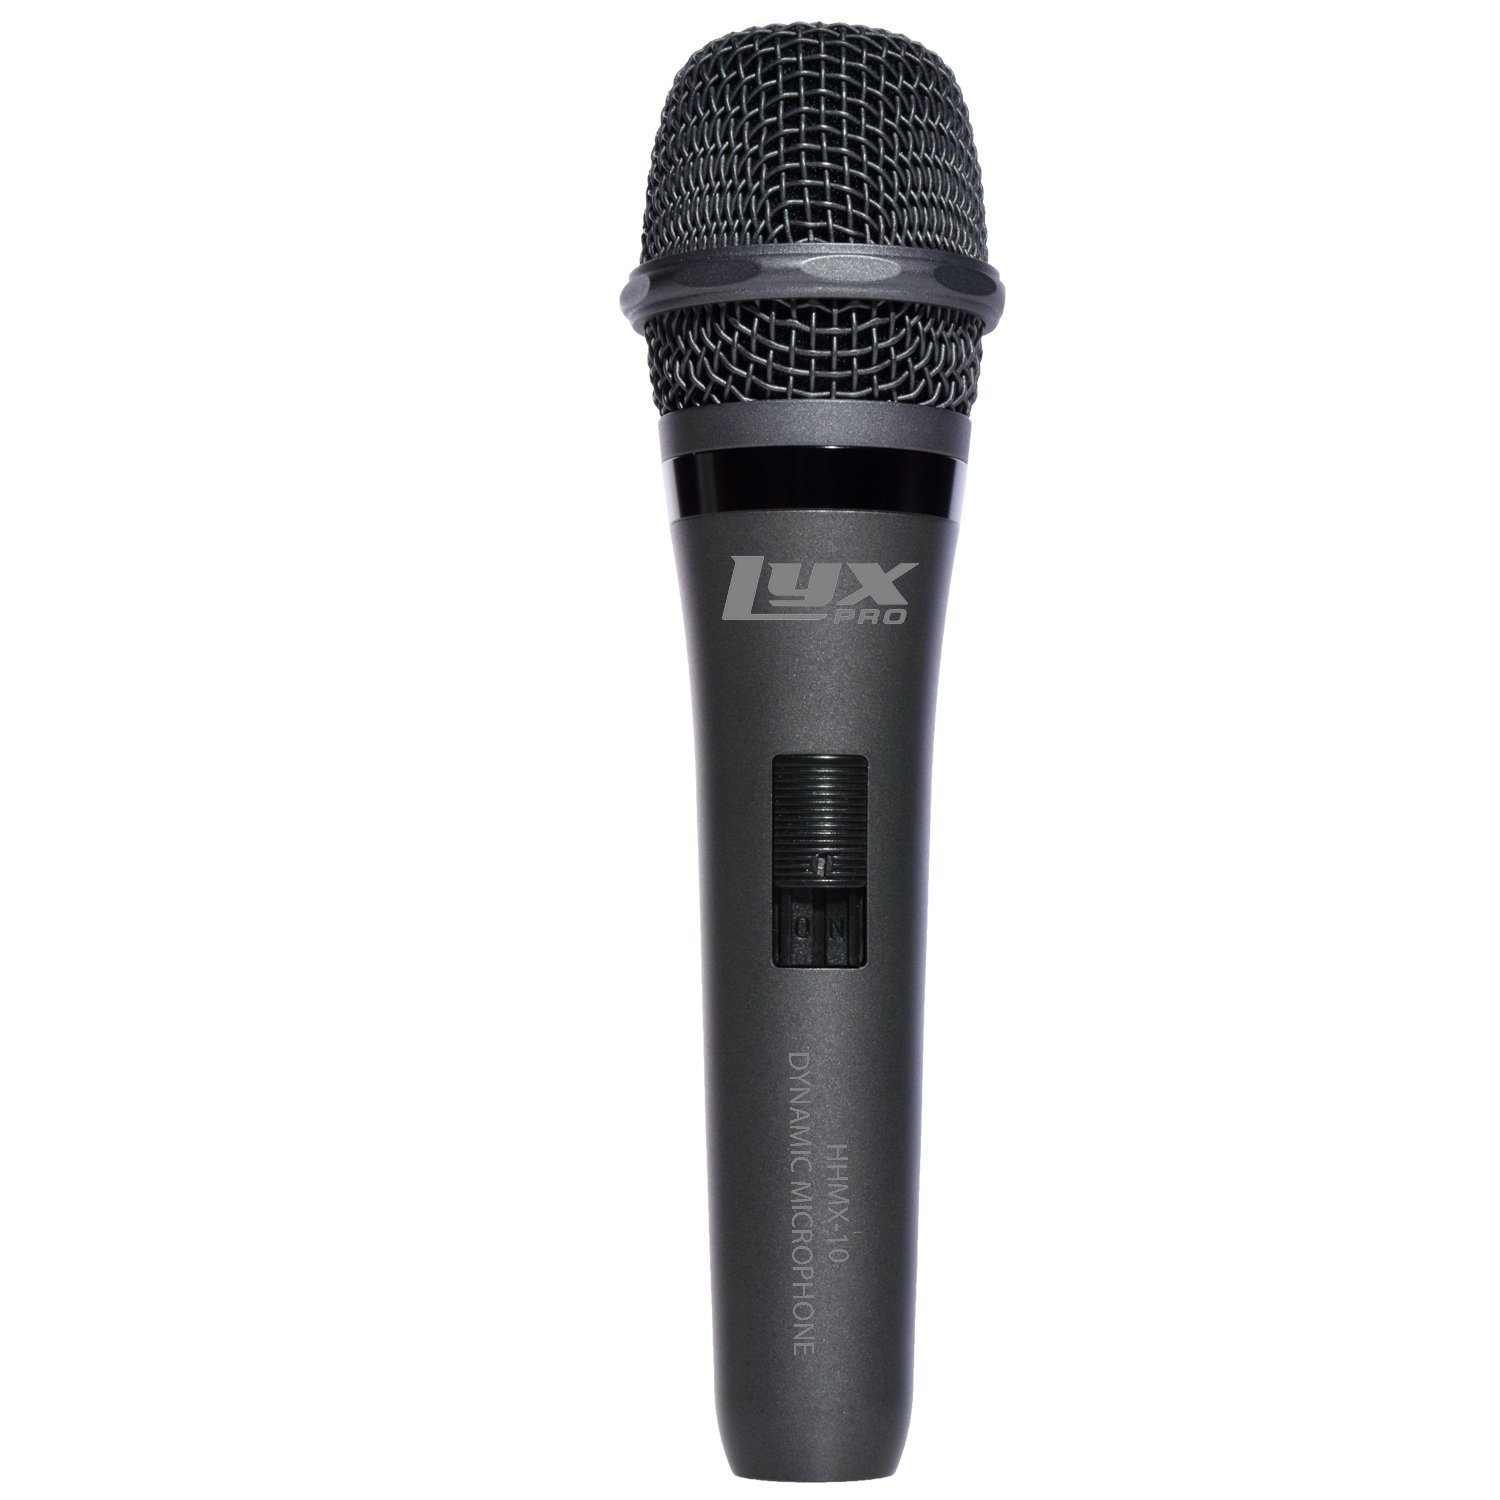 LyxPro HHMX-10 Wired Handheld Vocal Dynamic Microphone Cardioid on/off switch, Clear, Accurate Sound Reproduction for Live Vocals, Recording and Instruments